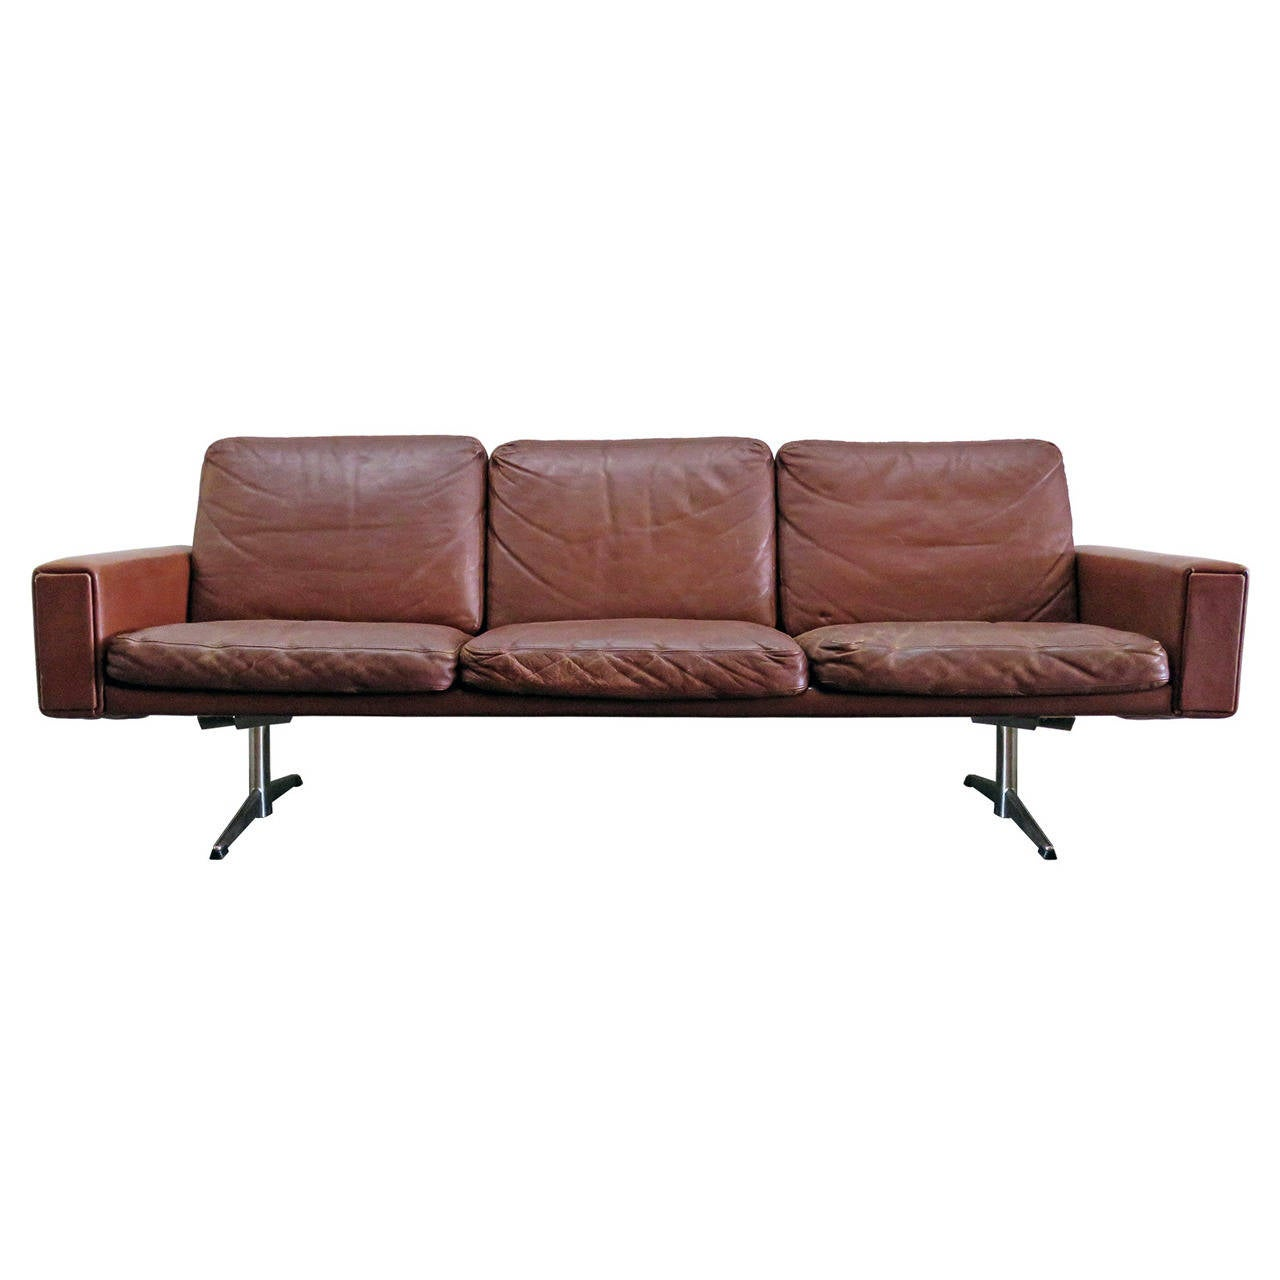 Danish design sofas thesofa for Danish design sofa